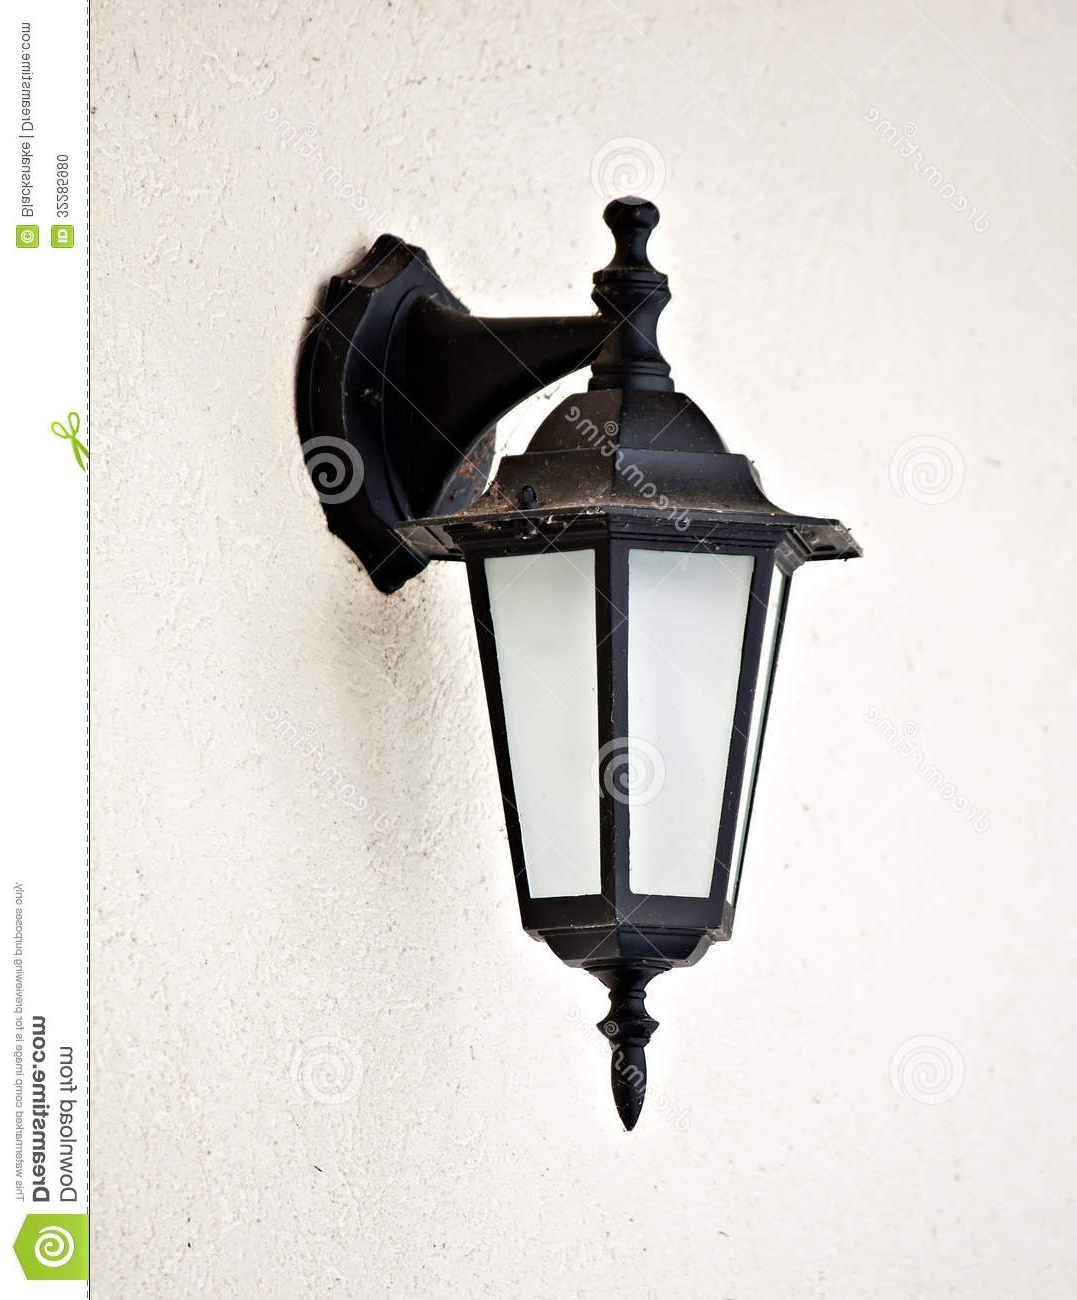 Popular Vintage Outdoor Lanterns In Old Vintage Outdoor Lantern Wall Hanging Lamp Stock Photo, Lamps (View 3 of 20)